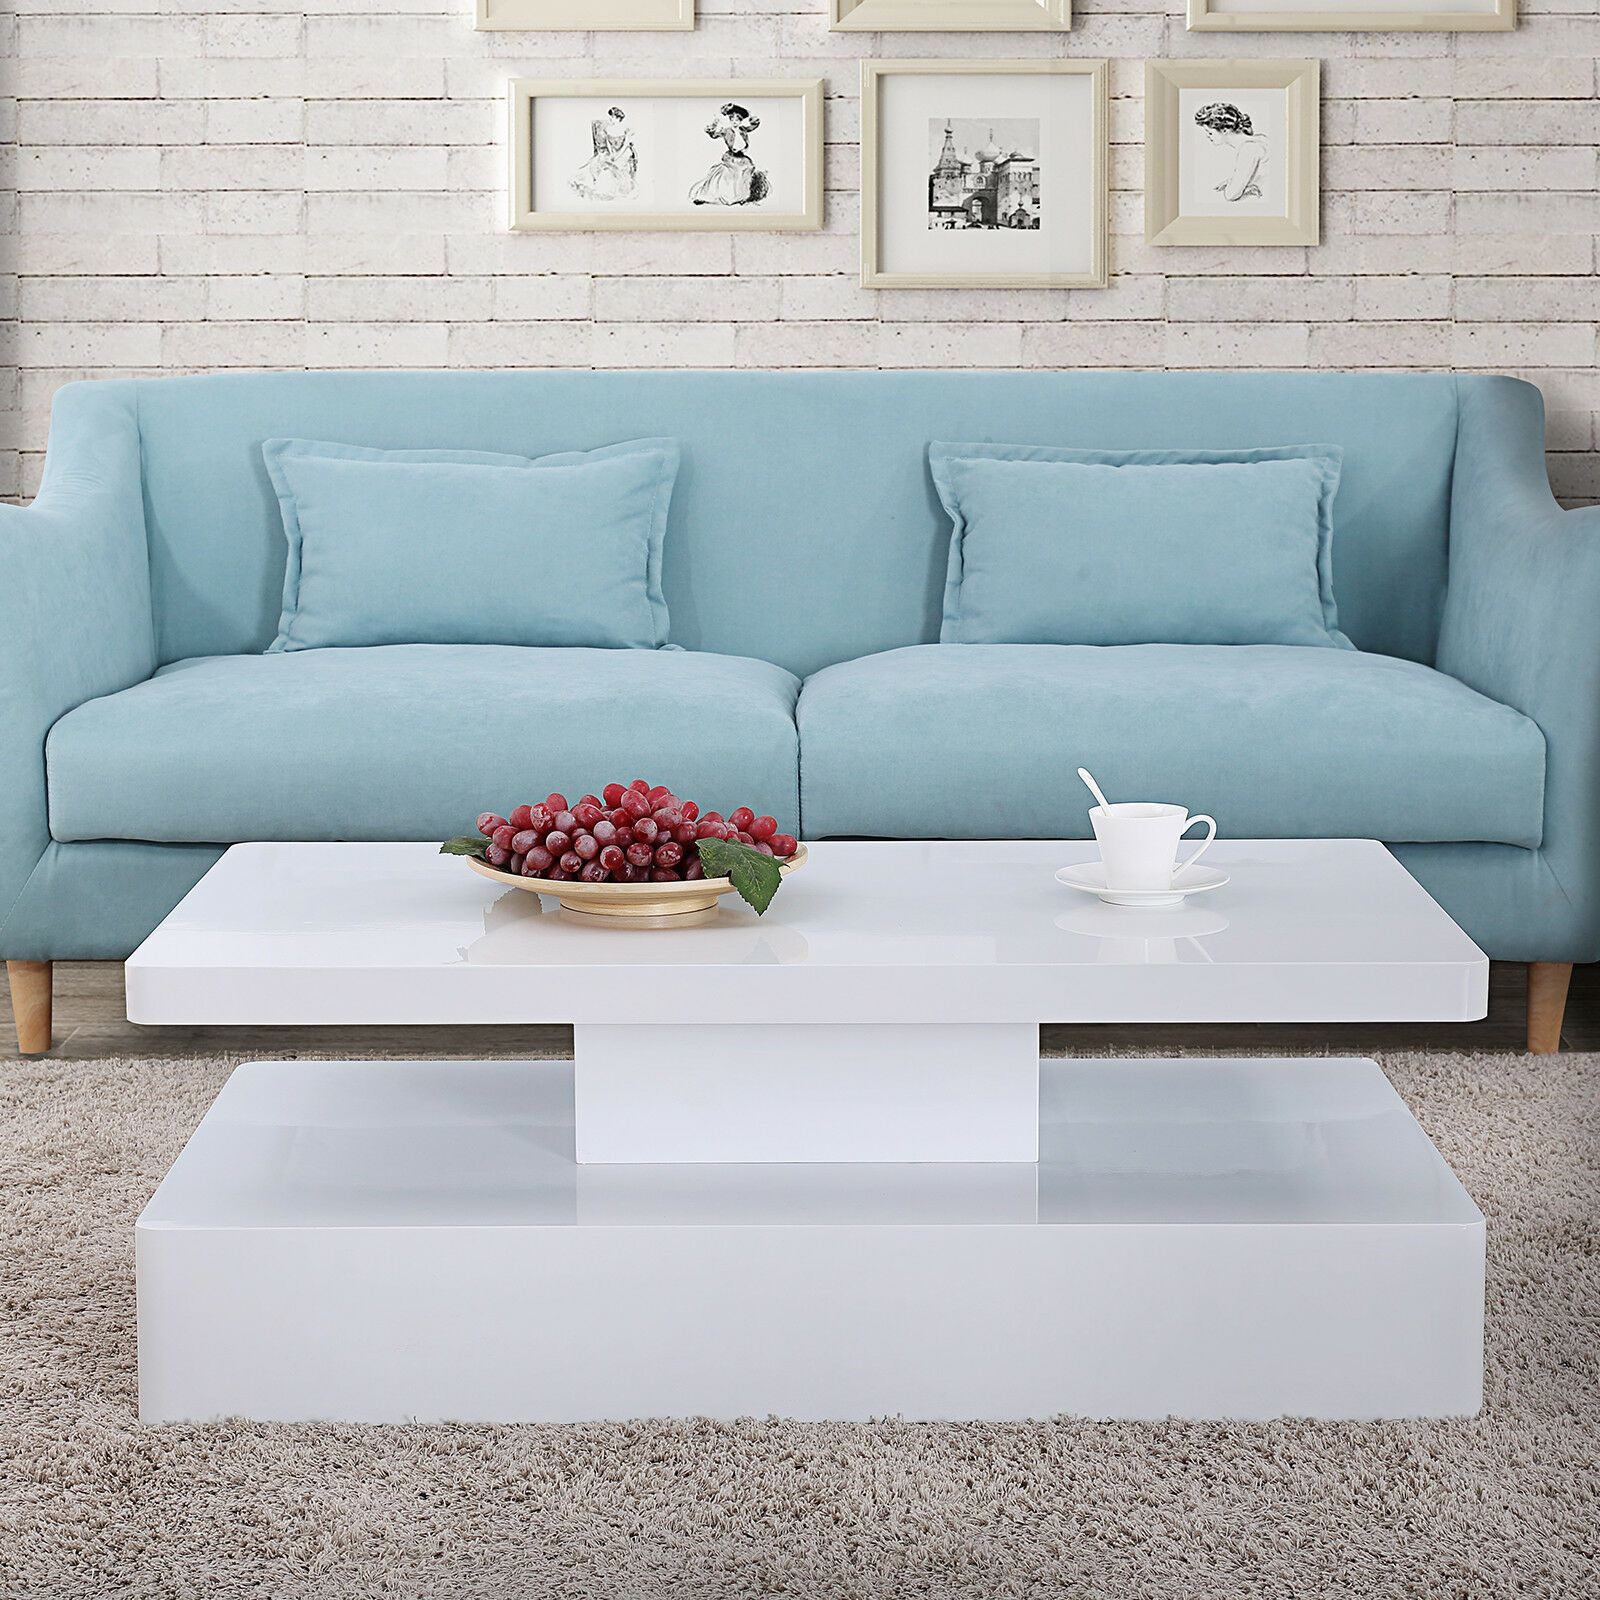 Kenwell High Gloss Led Lighting Coffee Table Living Room Furniture White 1169 90 In 2020 Furniture Design Living Room White Living Room Tables Living Room Furniture [ 1600 x 1600 Pixel ]